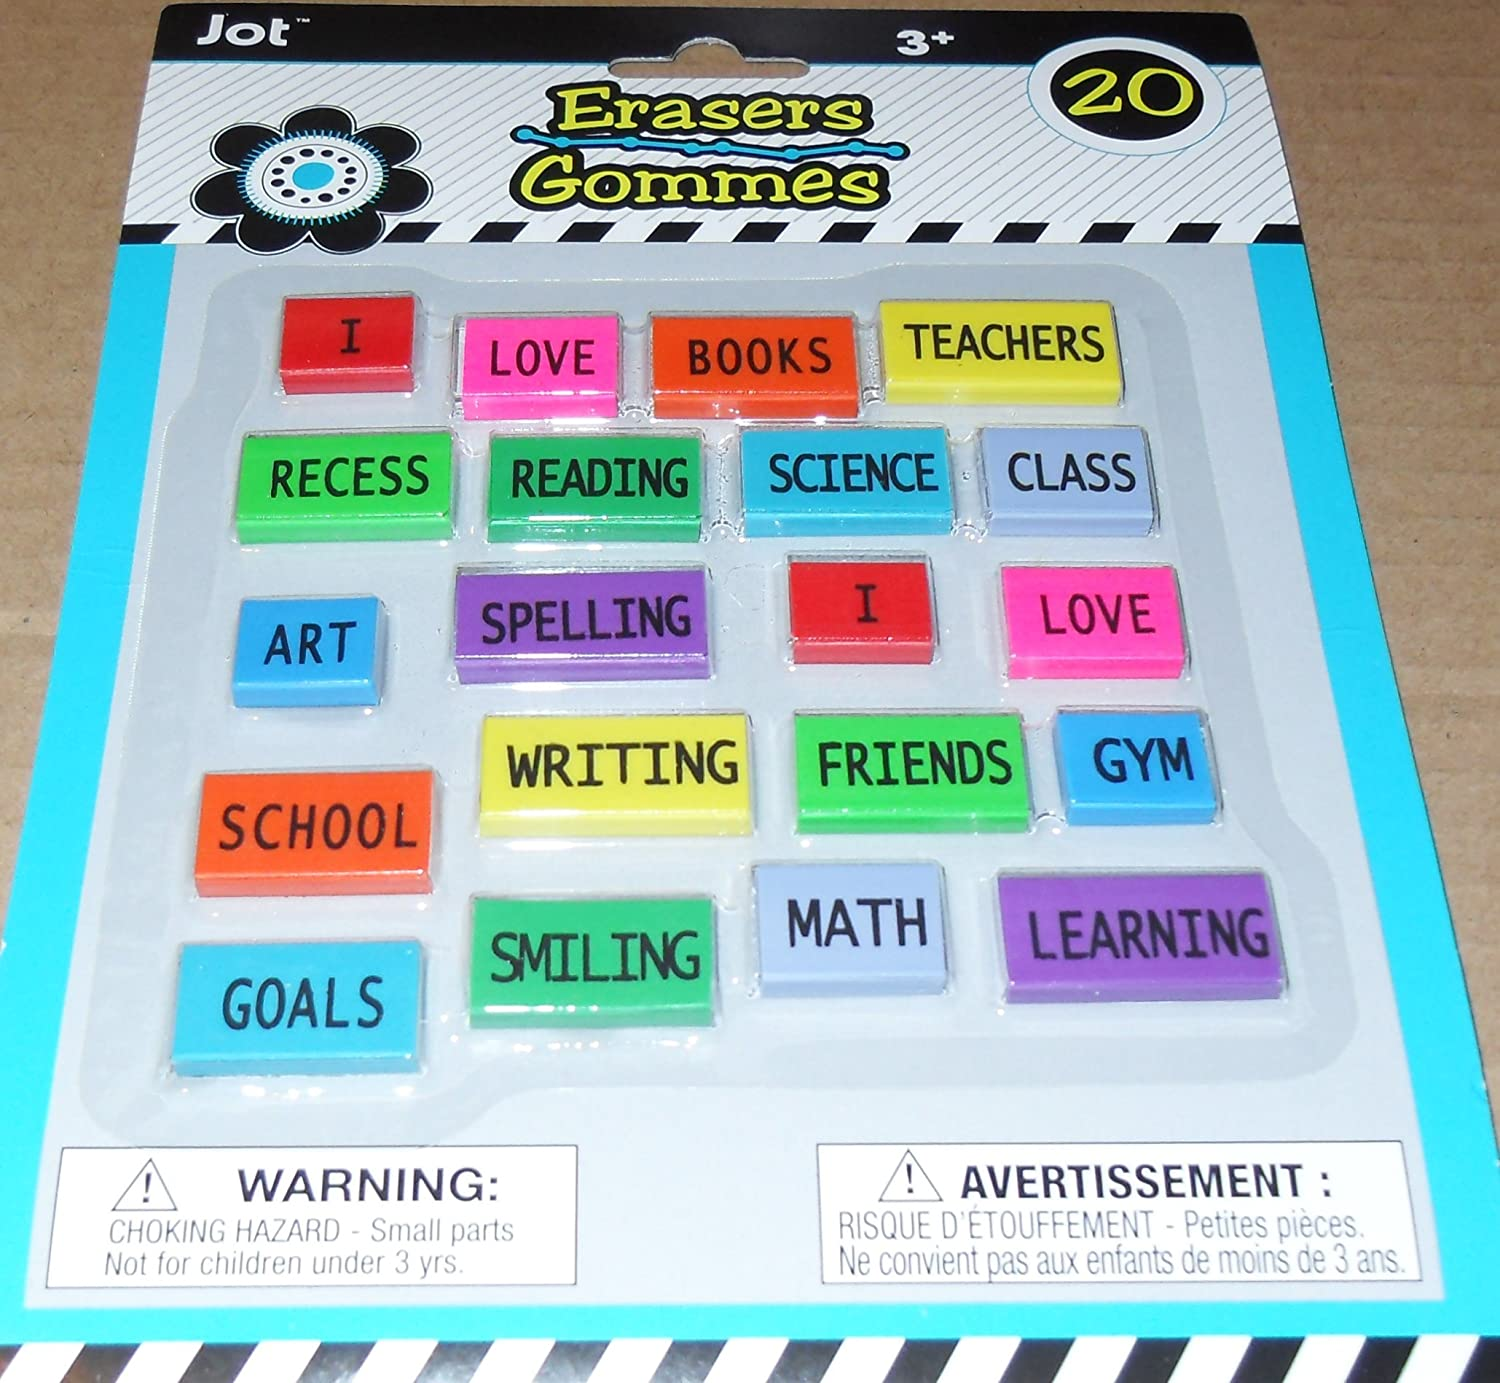 Reading Friends 20 erasers Greenbrier And More School I Writing Jot Erasers Books Love Word Erasers Recess